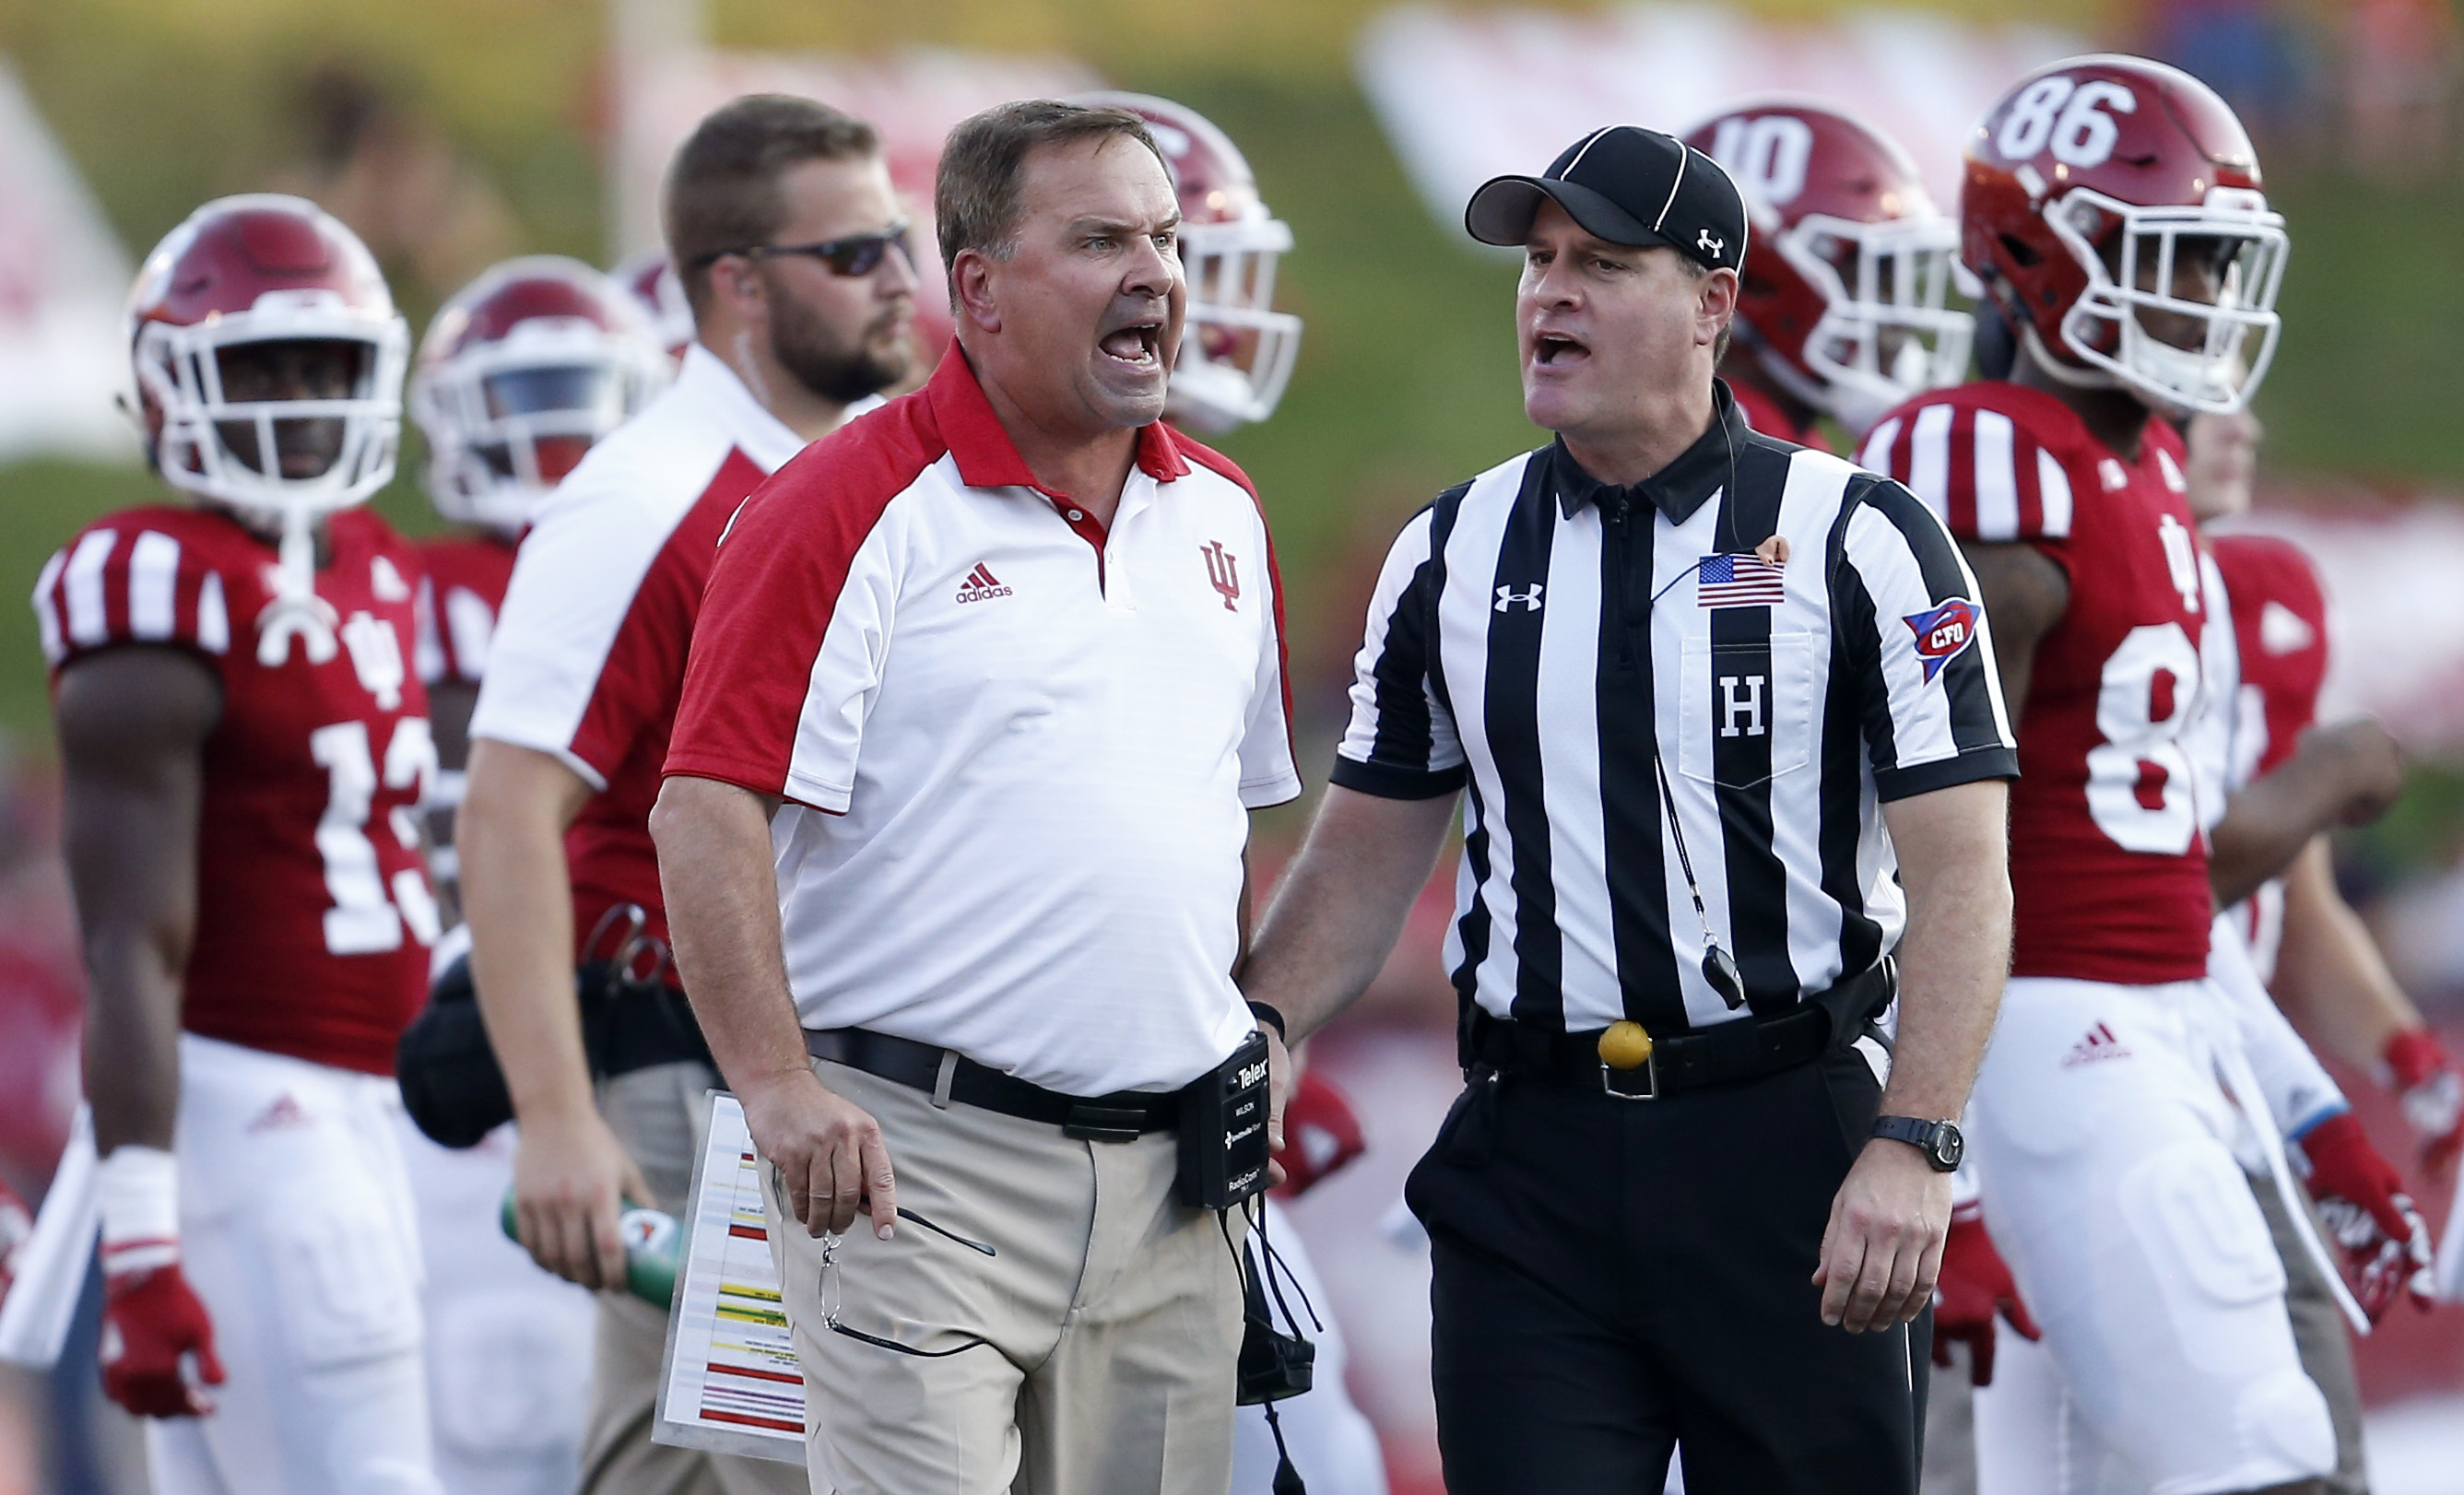 Indiana head coach Kevin Wilson reacts to an official's call during second half action against Nebraska in Bloomington, Ind., Saturday, Oct. 15, 2016. Nebraska won the game 27-22. (AP Photo/Sam Riche)